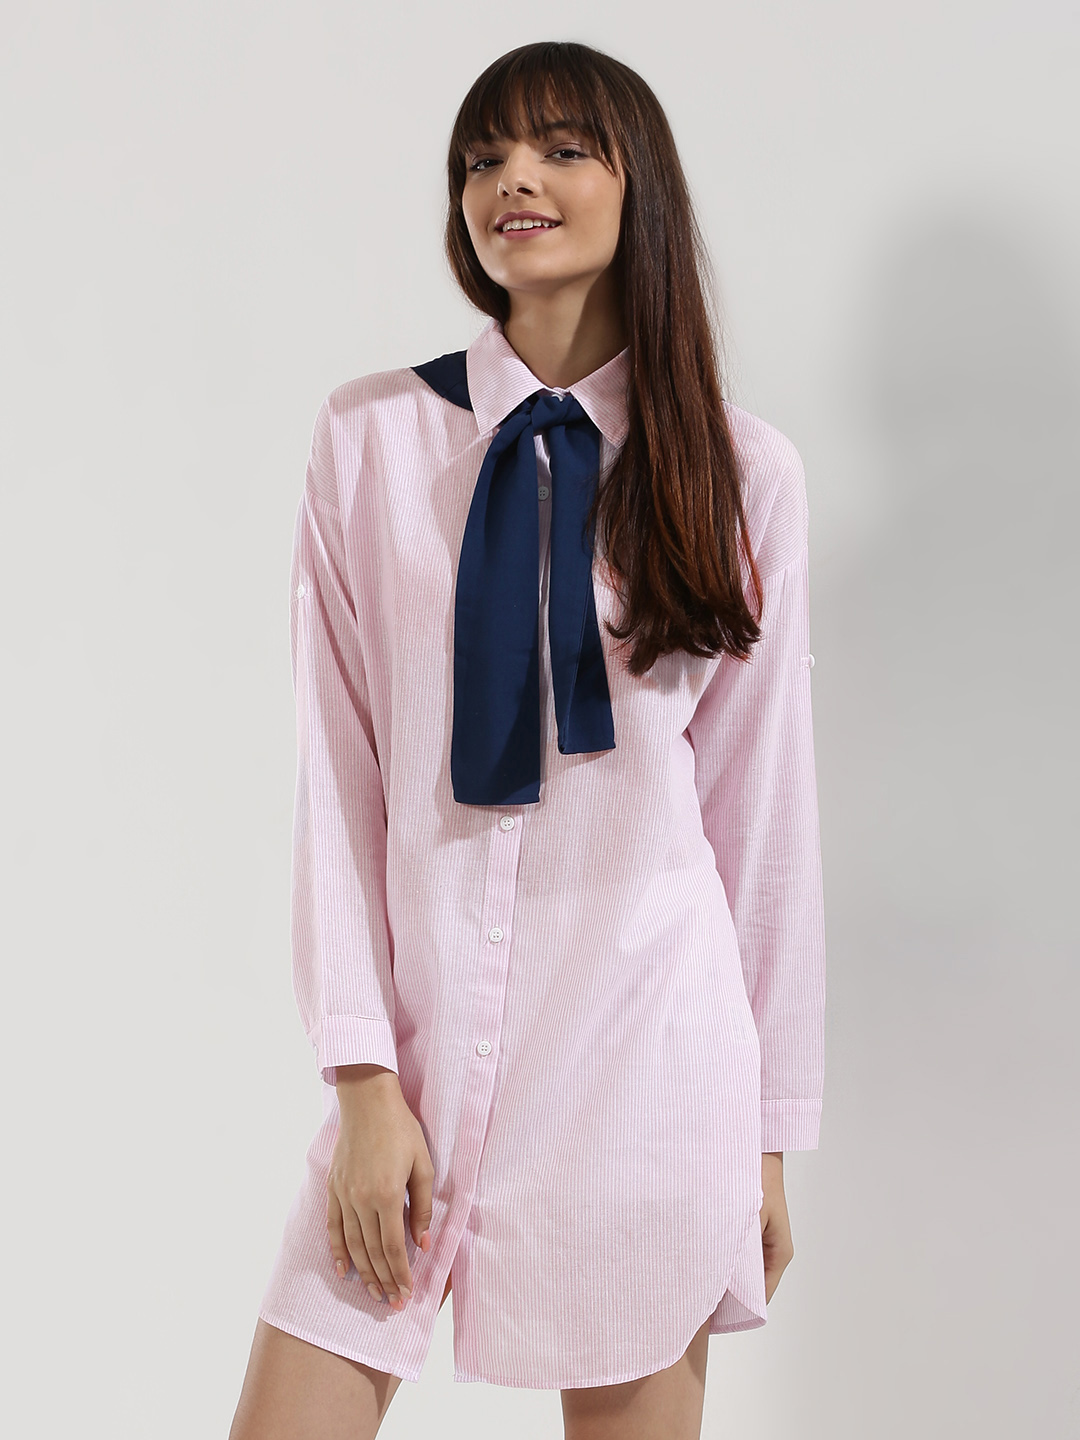 Origami Lily Pink Shirt Dress With Sailor Scarf 1